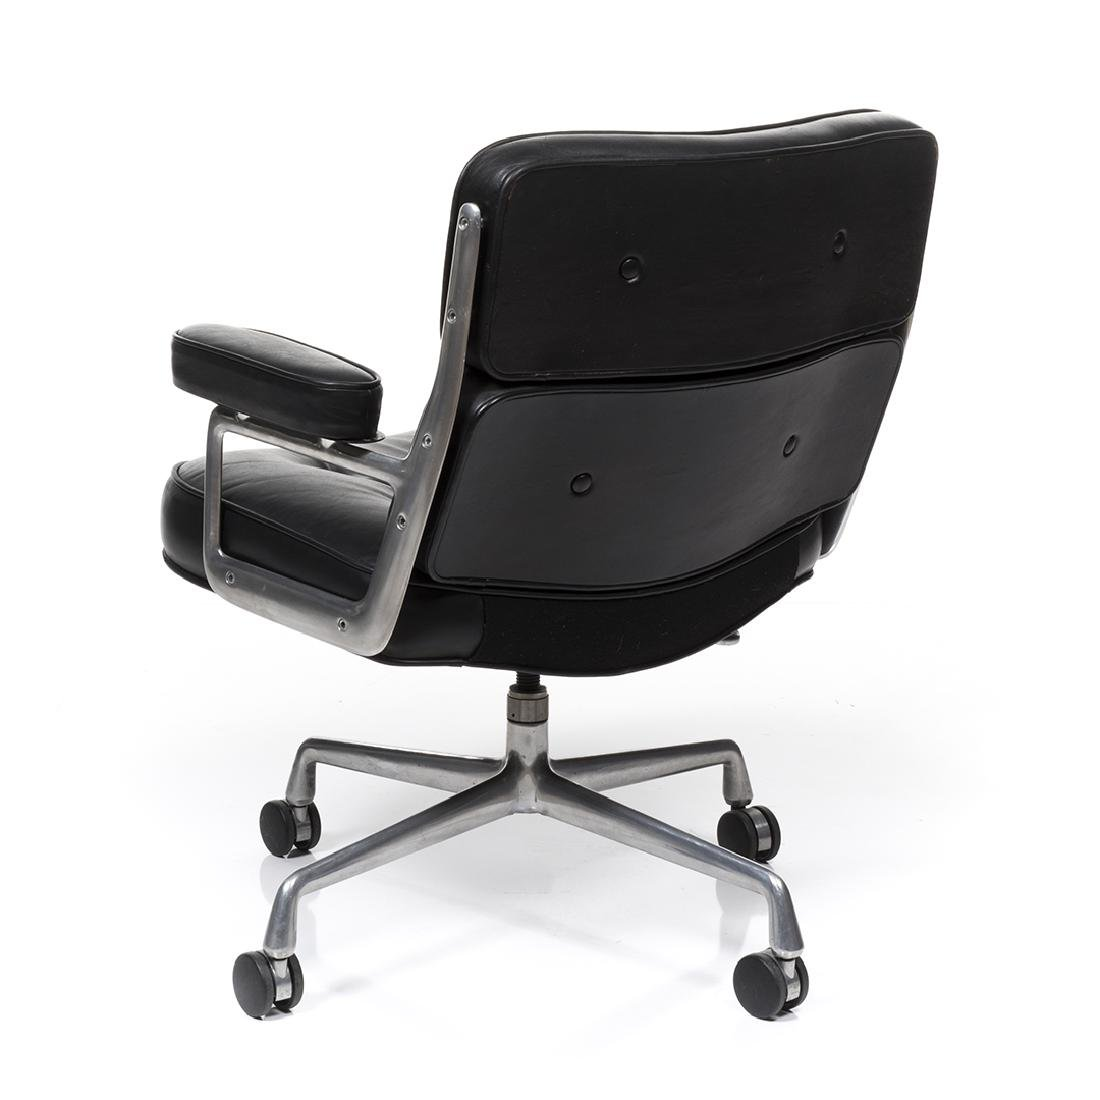 Charles Eames Time-Life Lobby Chair - 4